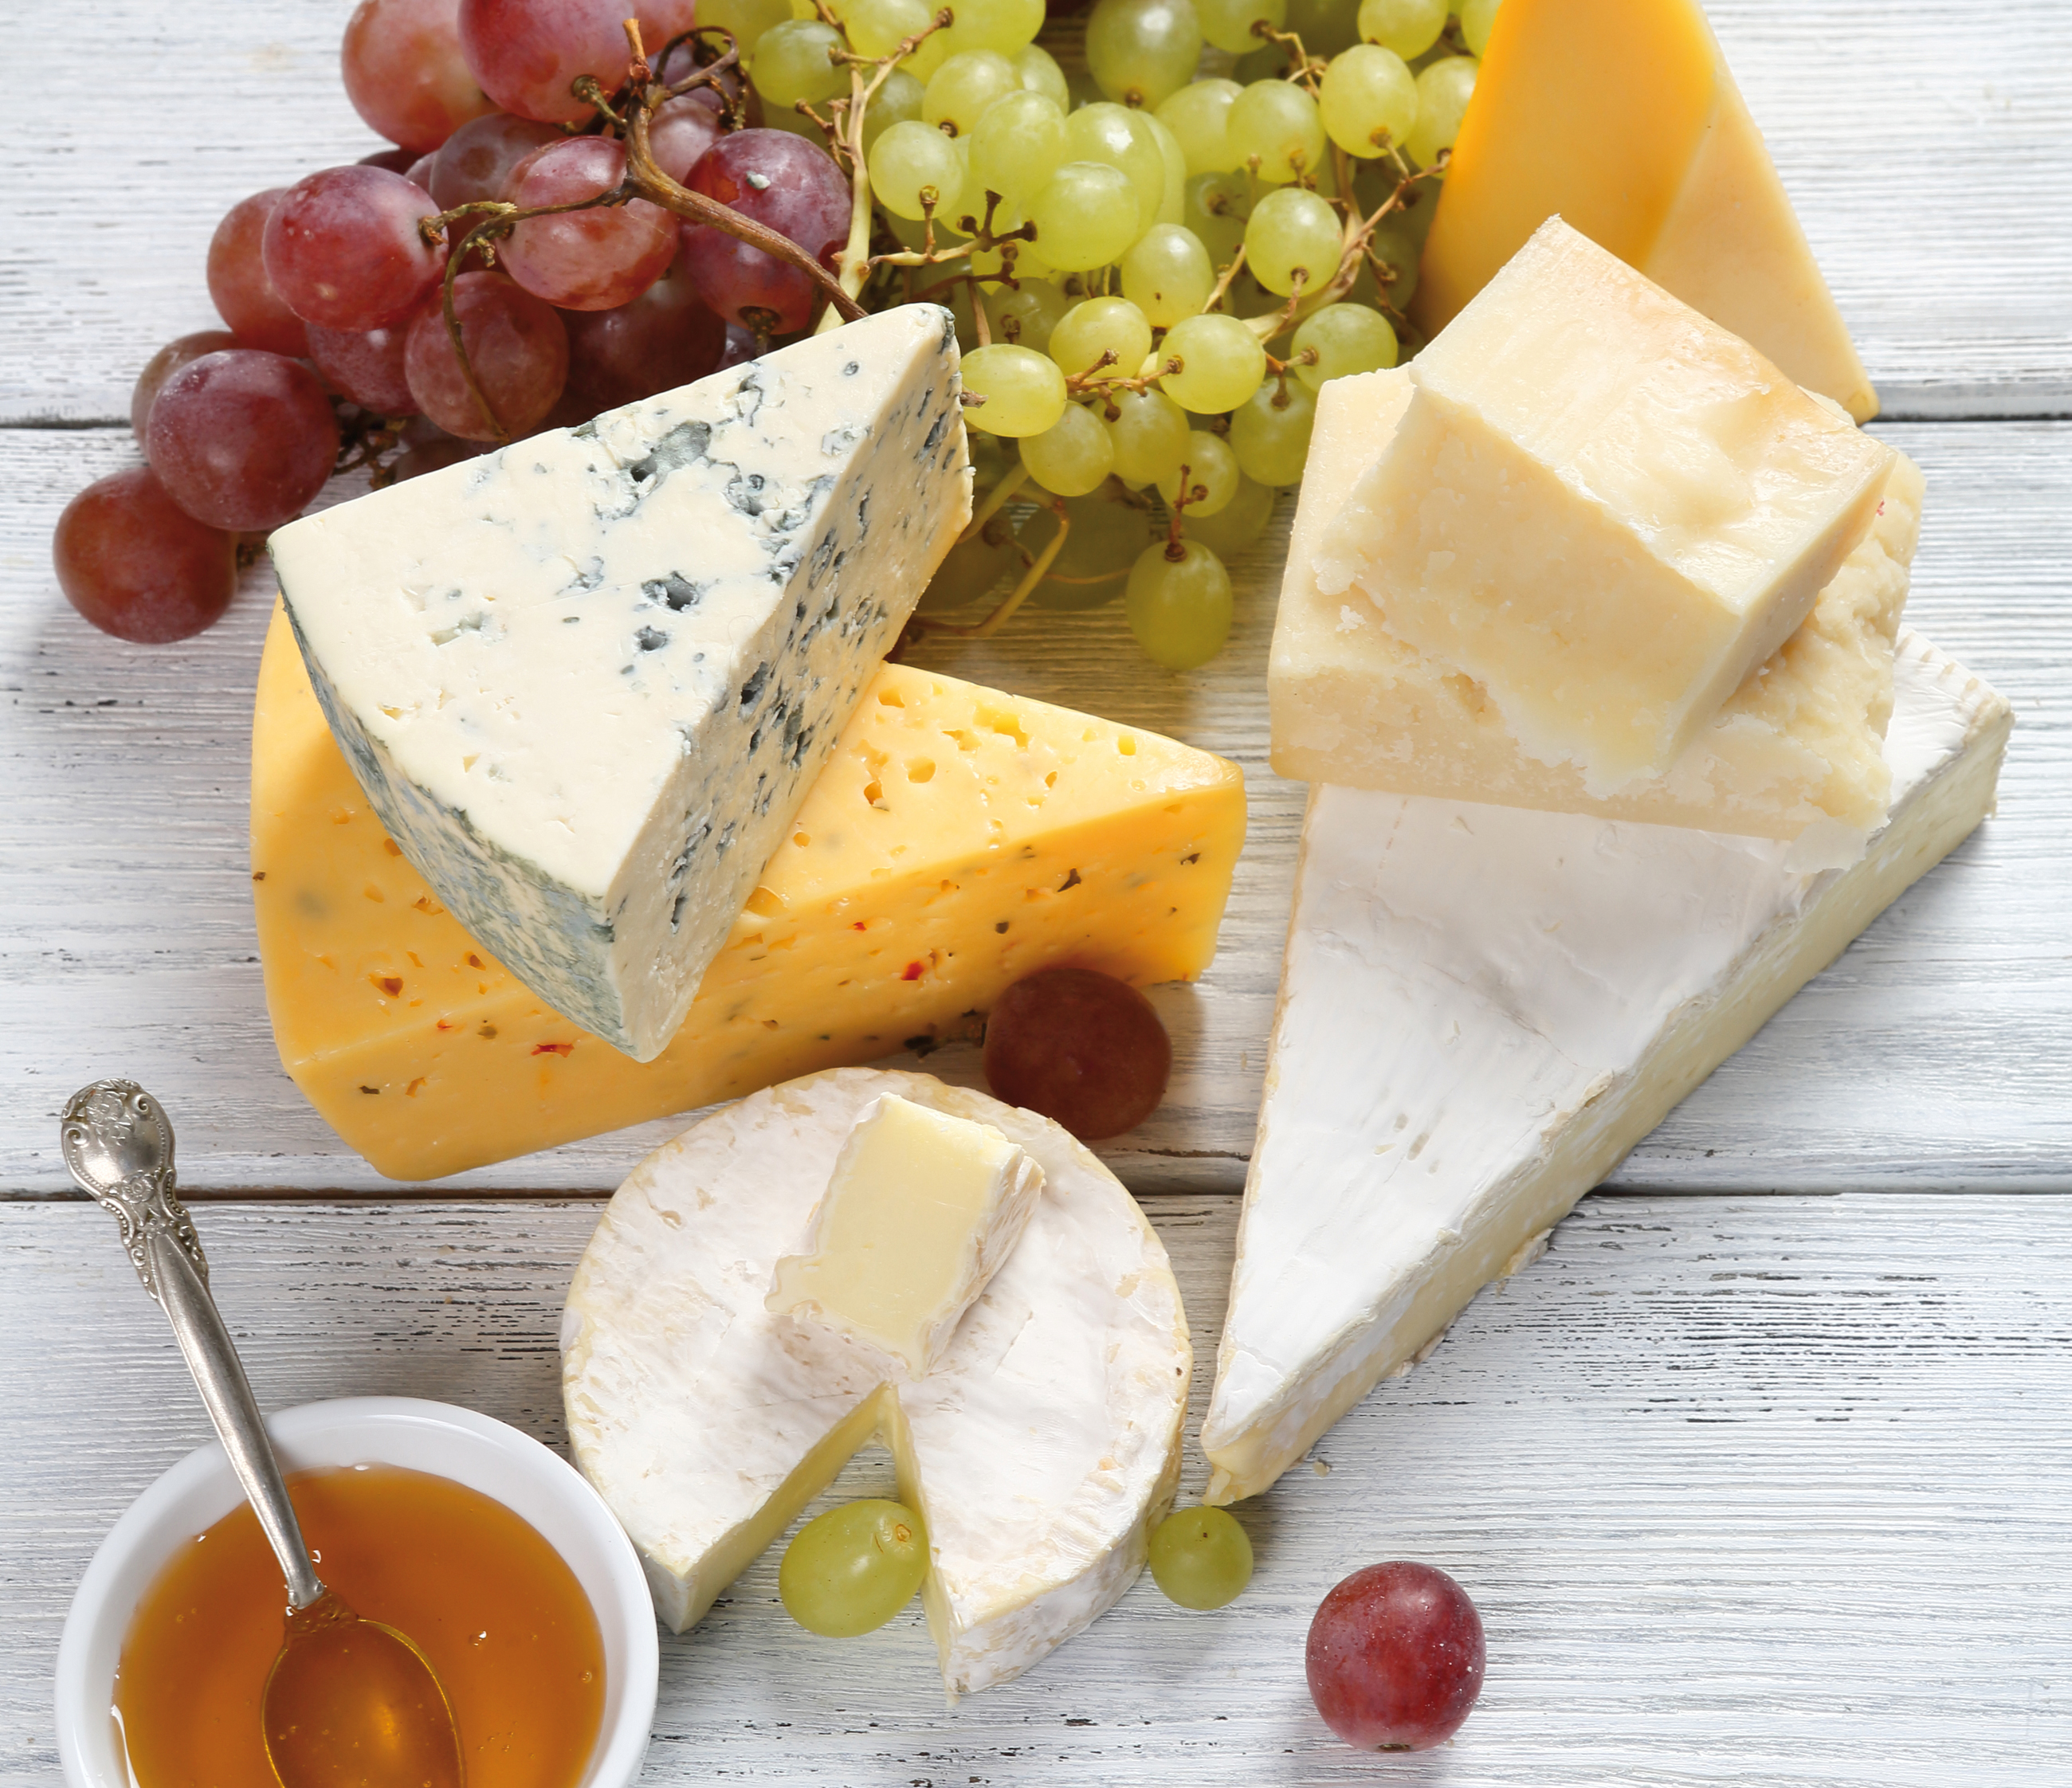 636591205397591596Assorted-cheeses-with-grapes-and-honey-000060582676_Large.jpg